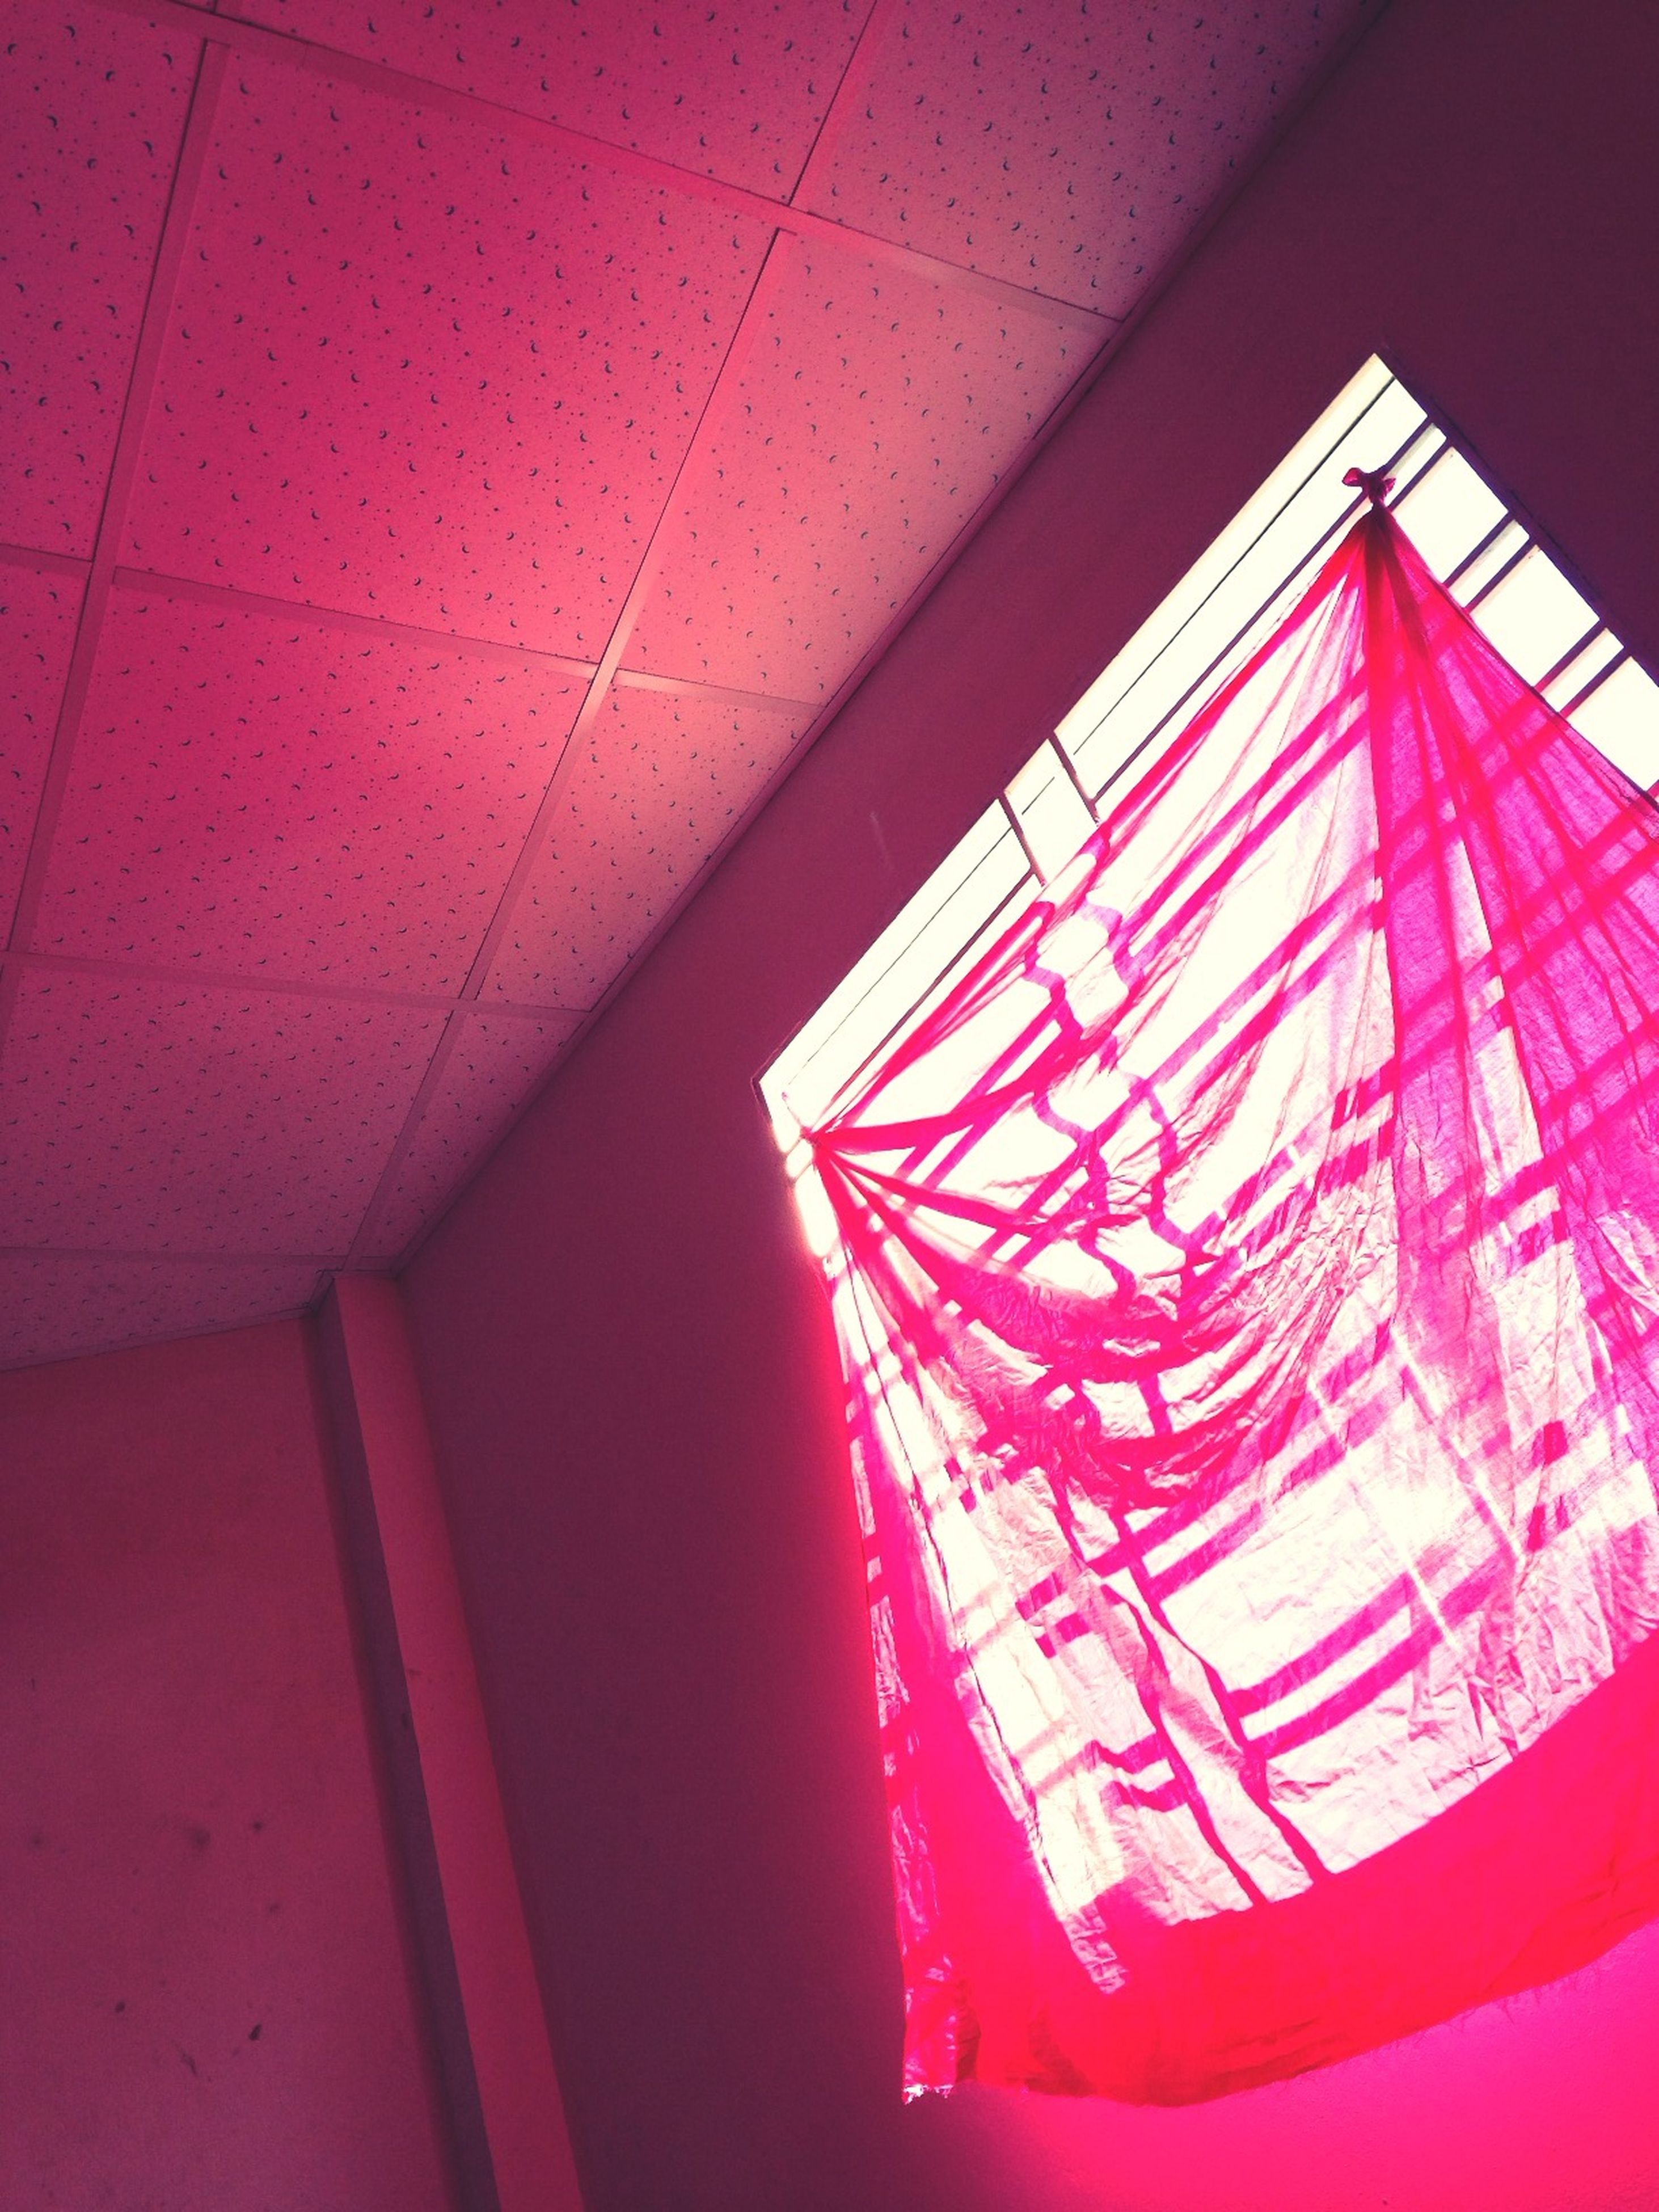 indoors, ceiling, red, pattern, low angle view, illuminated, architecture, lighting equipment, built structure, design, wall - building feature, no people, home interior, geometric shape, interior, modern, absence, staircase, empty, sunlight